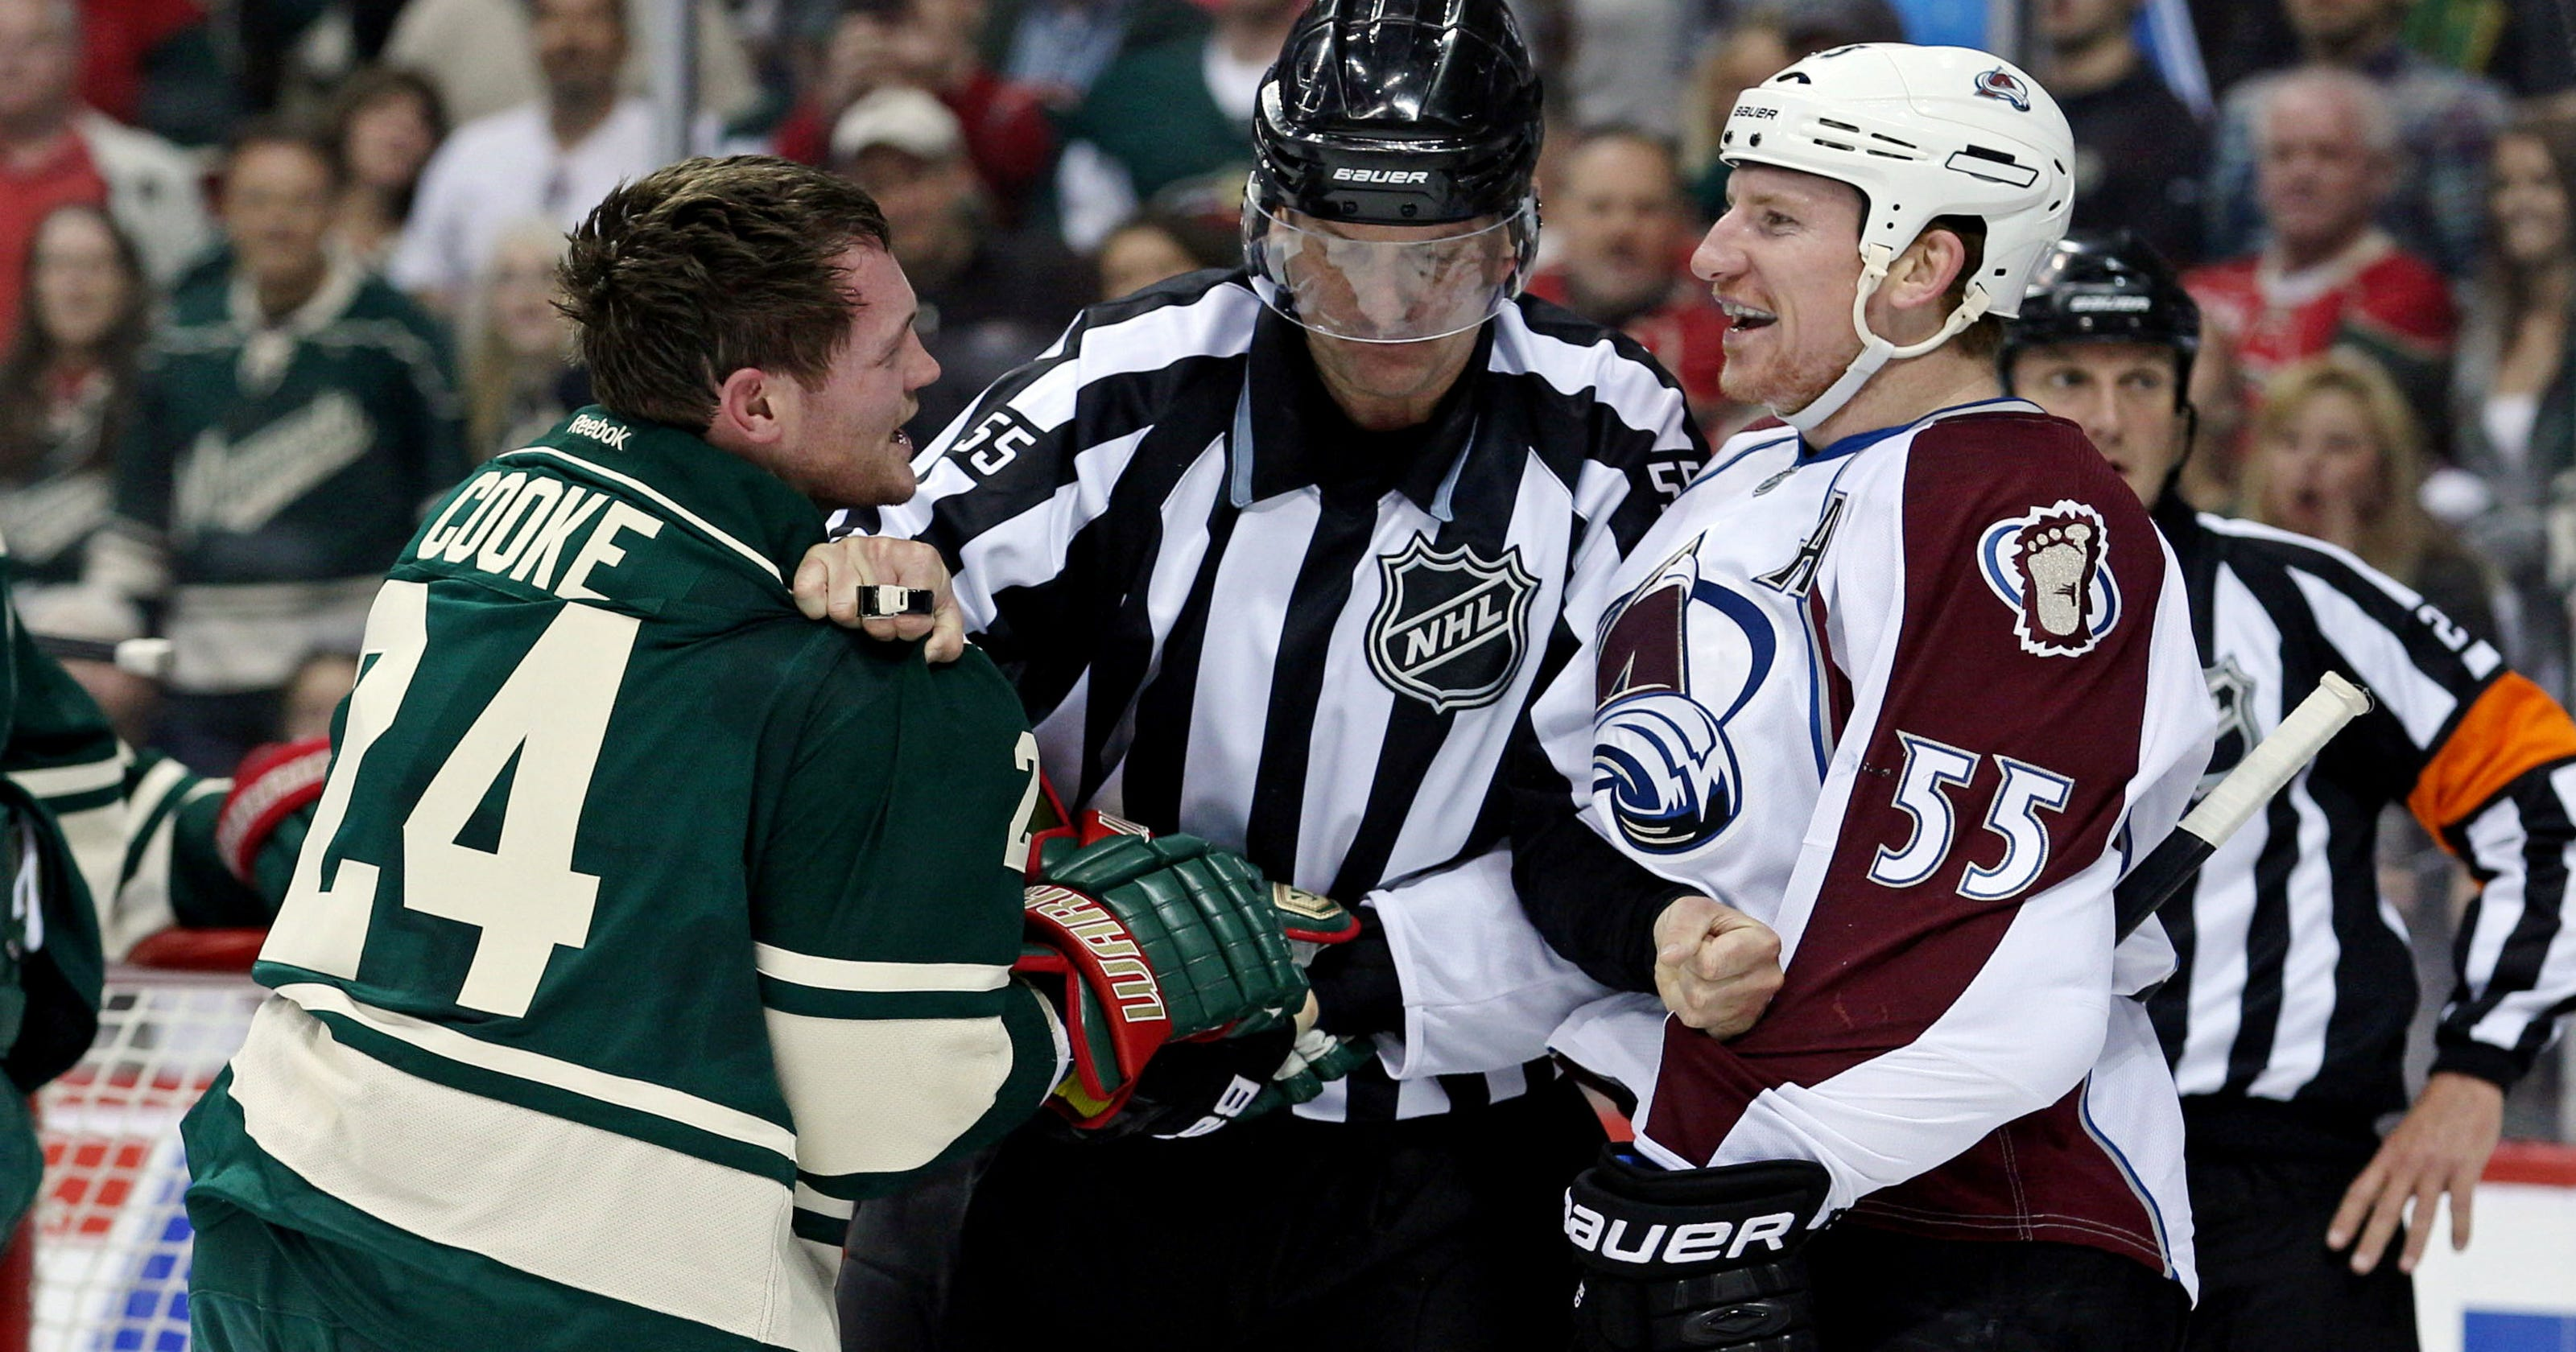 Matt Cooke faces suspension for kneeing Tyson Barrie